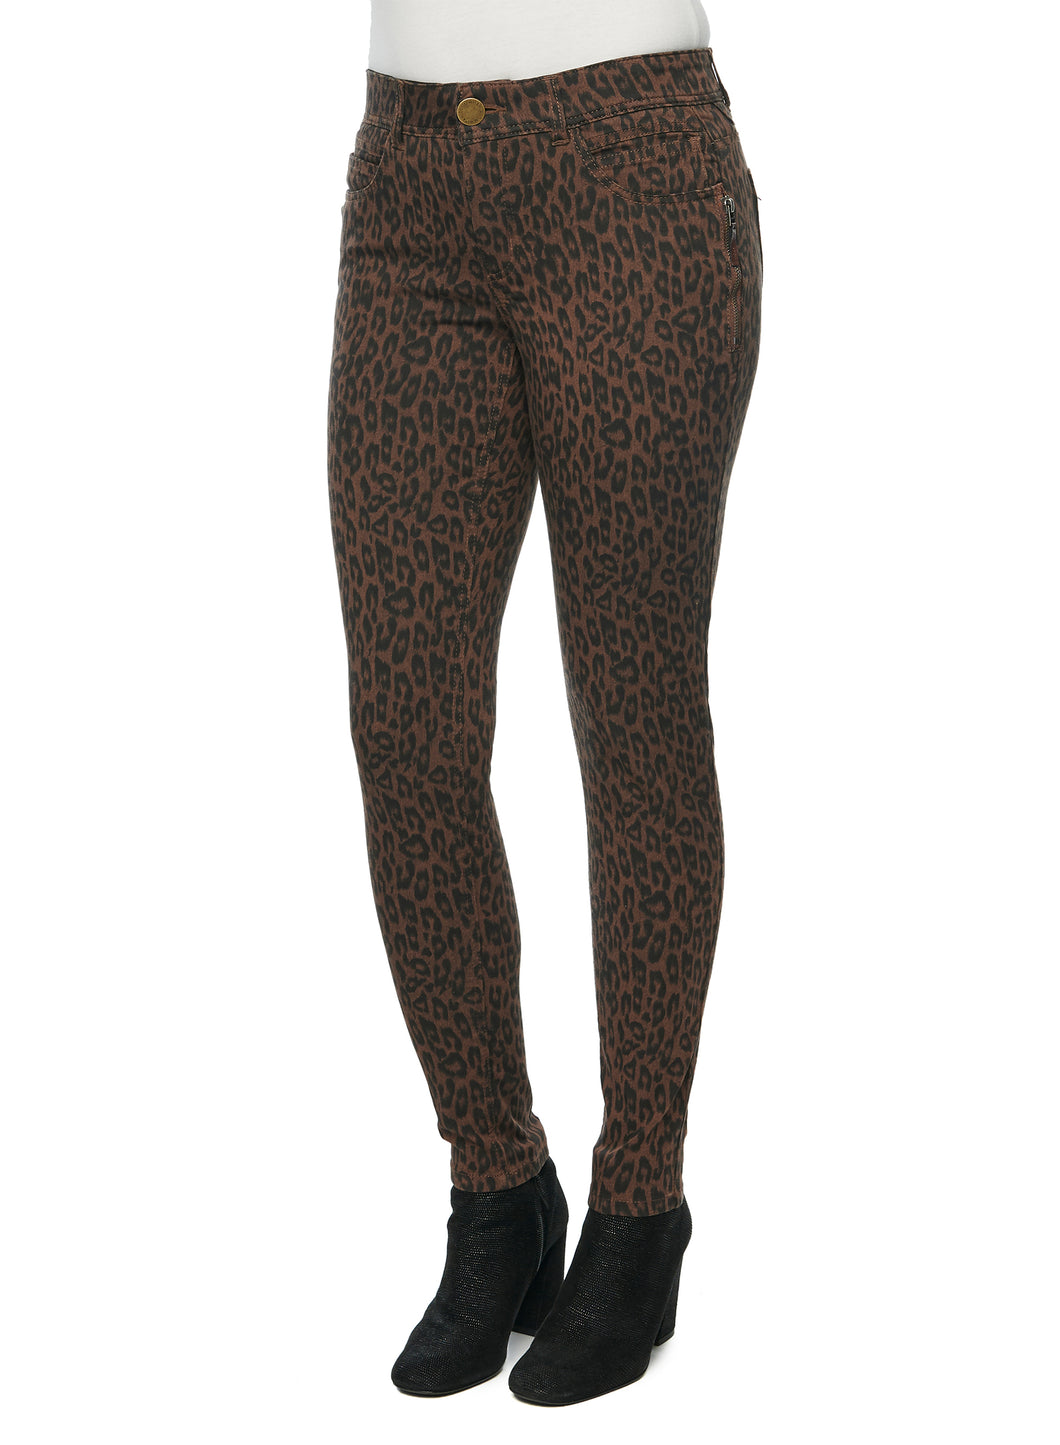 Democracy Chocolate Leopard Jeans